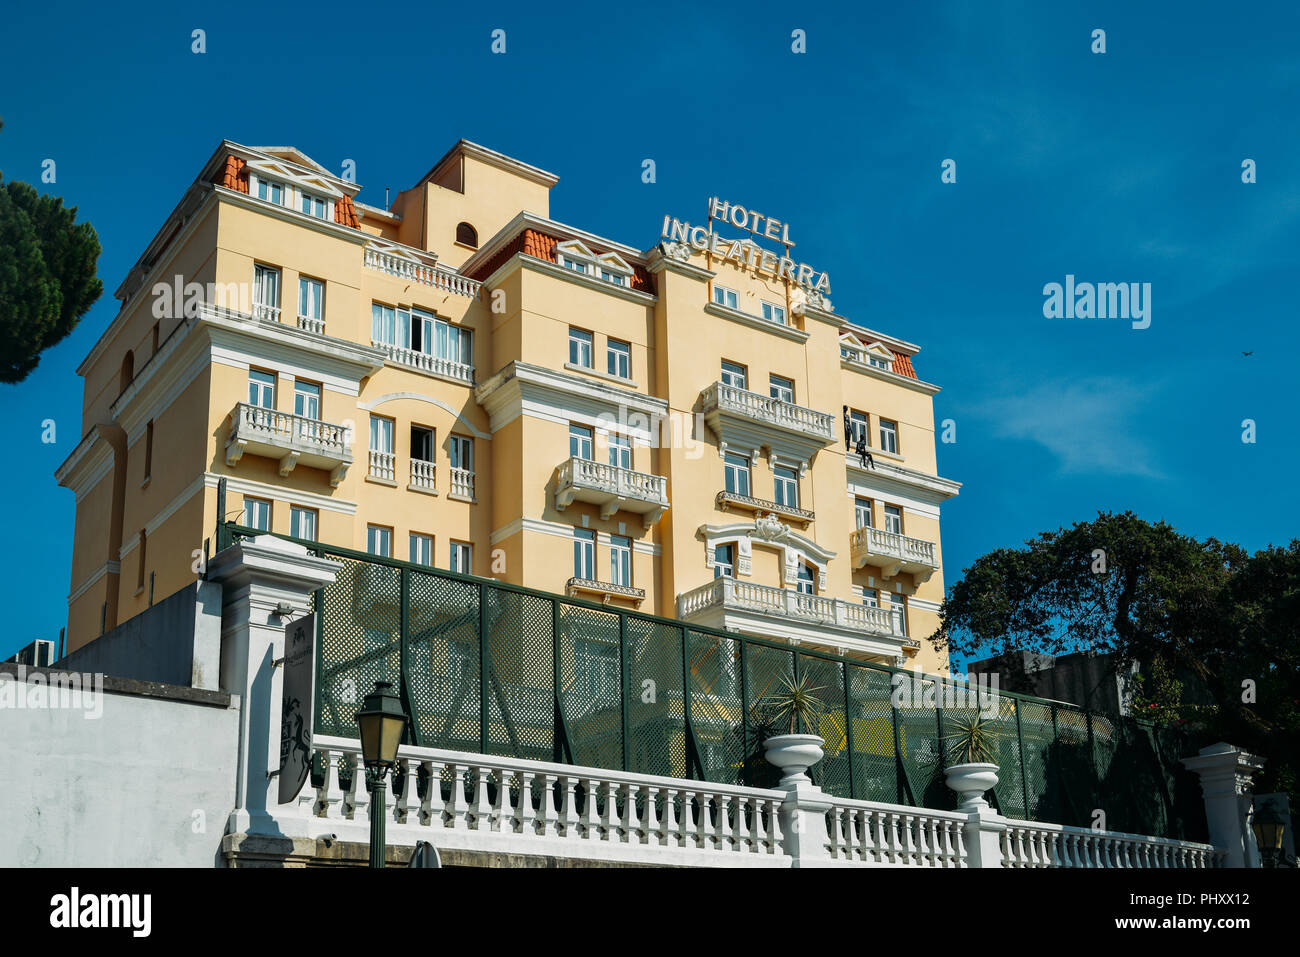 Estoril, Portugal - August 30th, 2018: Facade of Belle Epoque style Hotel Inglaterra in Estoril, famous for hosting WWII-era spies - Stock Image